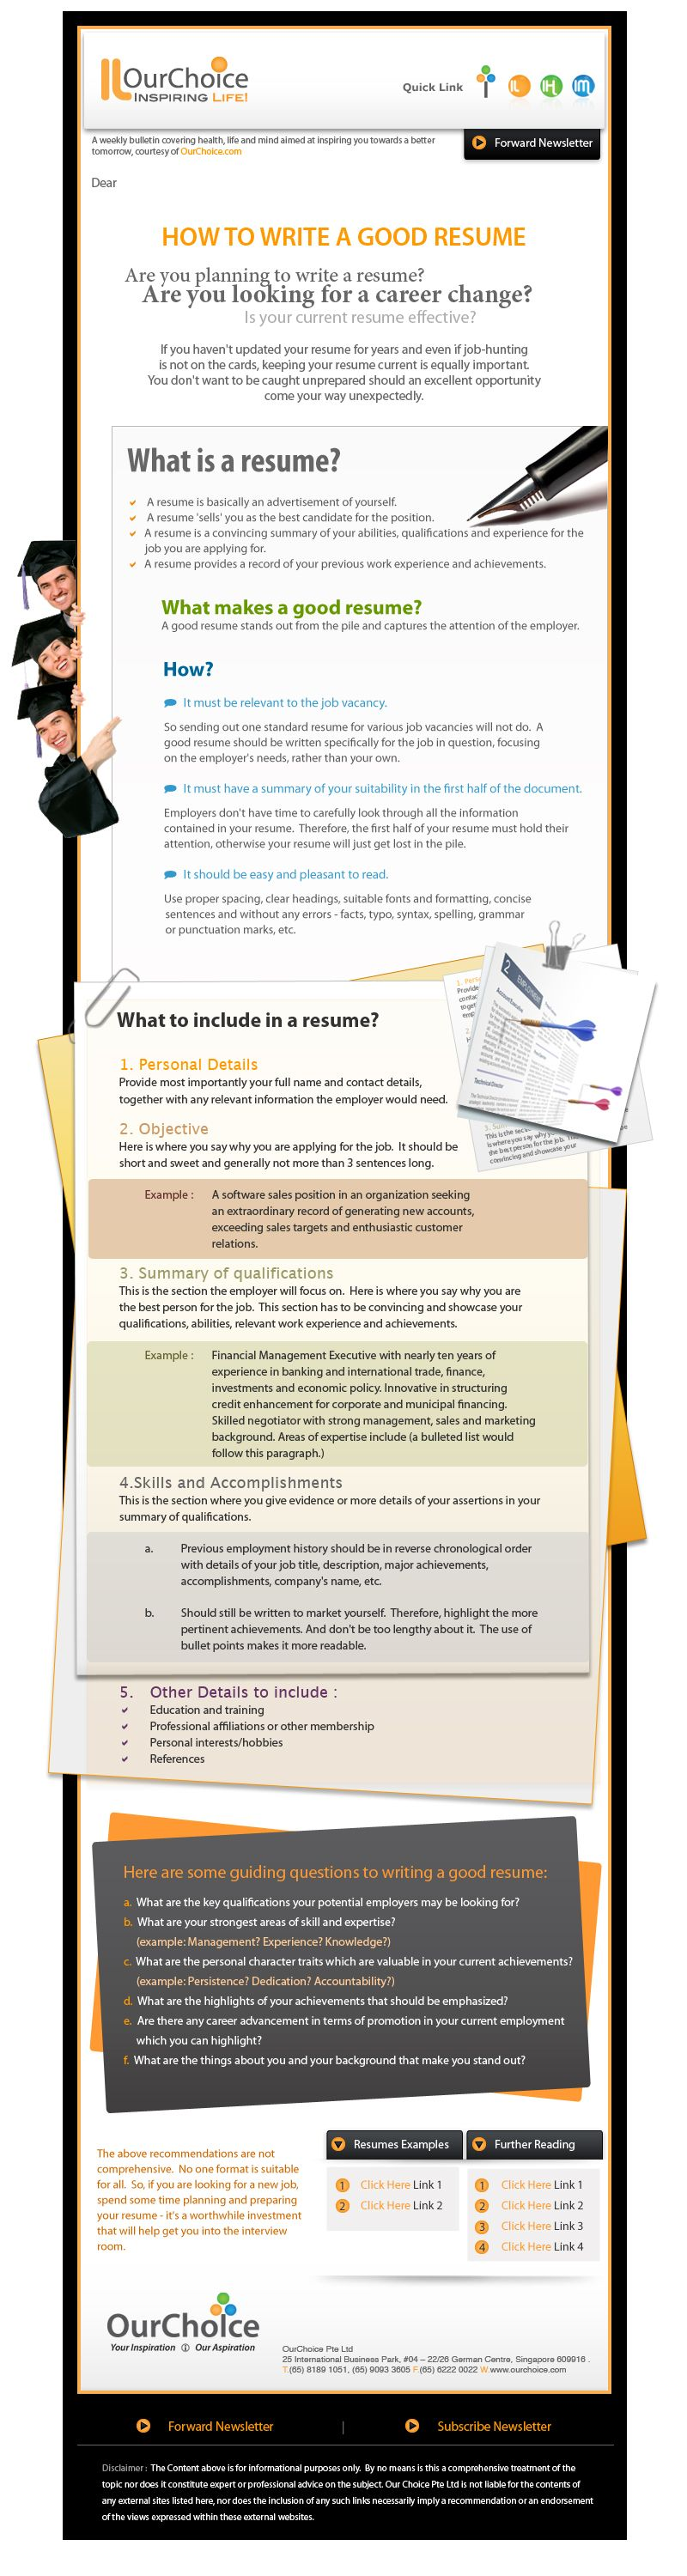 some resume writing good tips infographic - Tips On A Good Resume